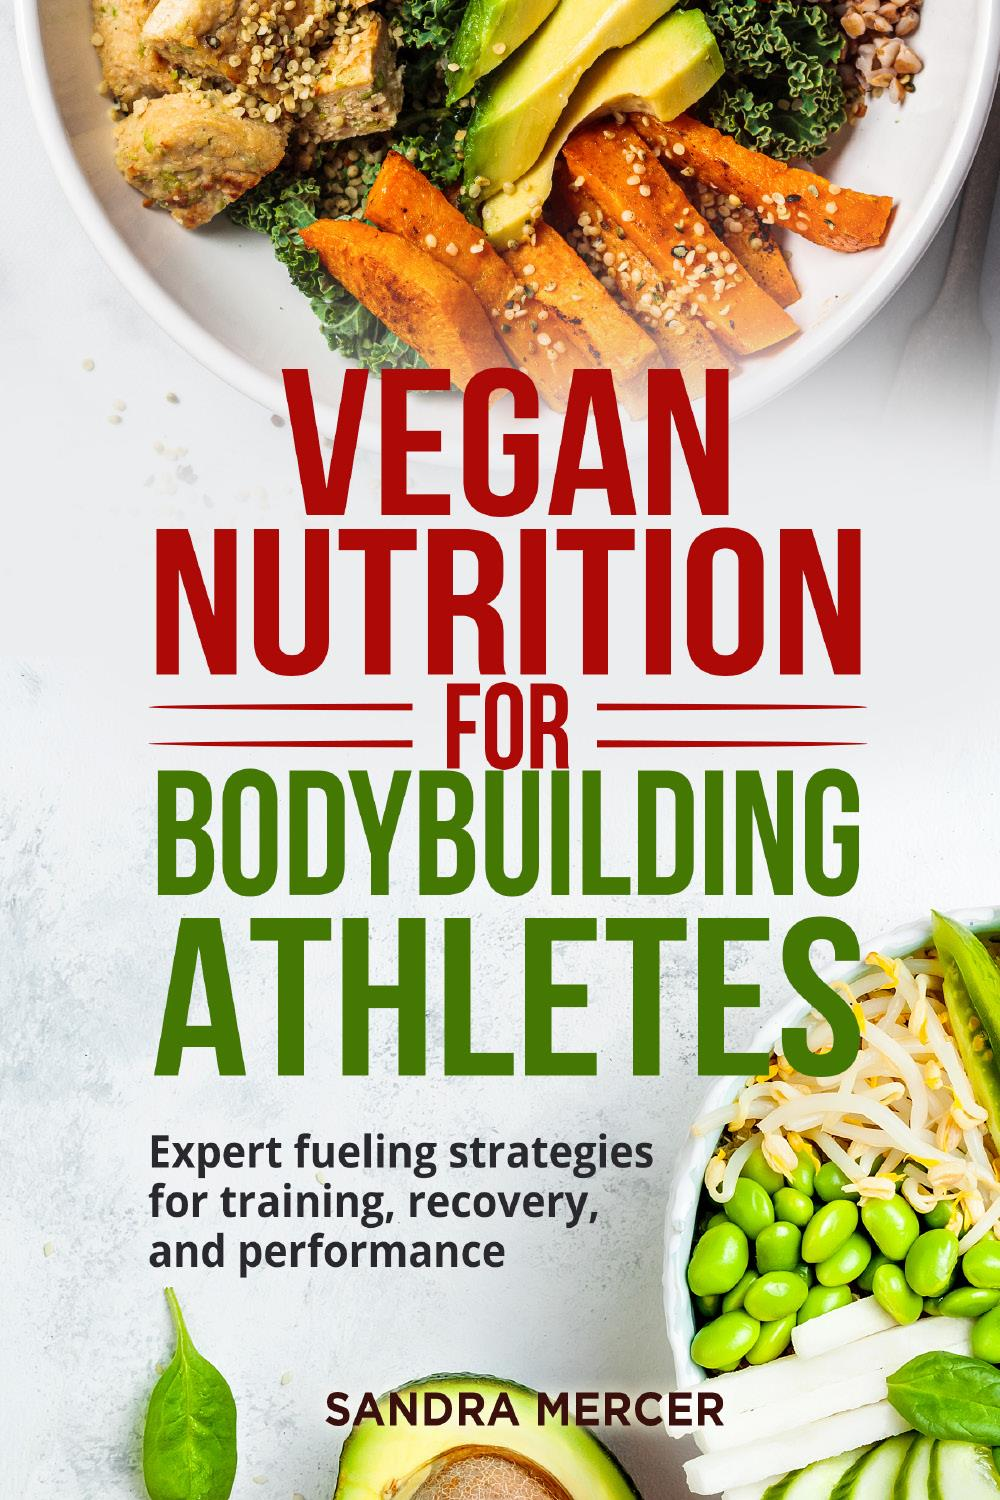 Vegan nutrition for bodybuilding athletes. Expert fueling strategies for training, recovery, and performance